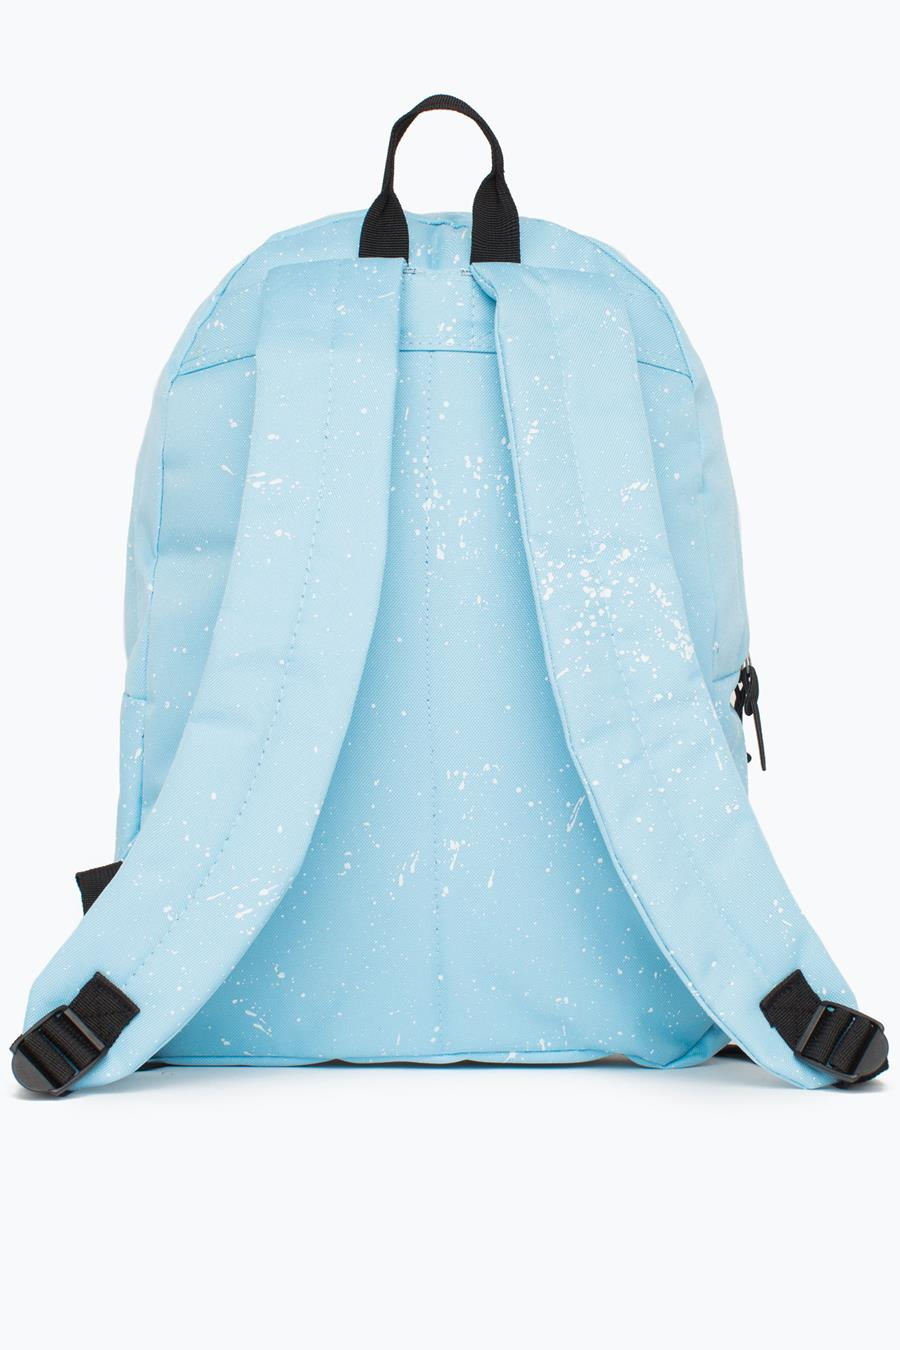 73dc38353d HYPE BABY BLUE WITH WHITE SPECKLE BACKPACK – JustHype ltd